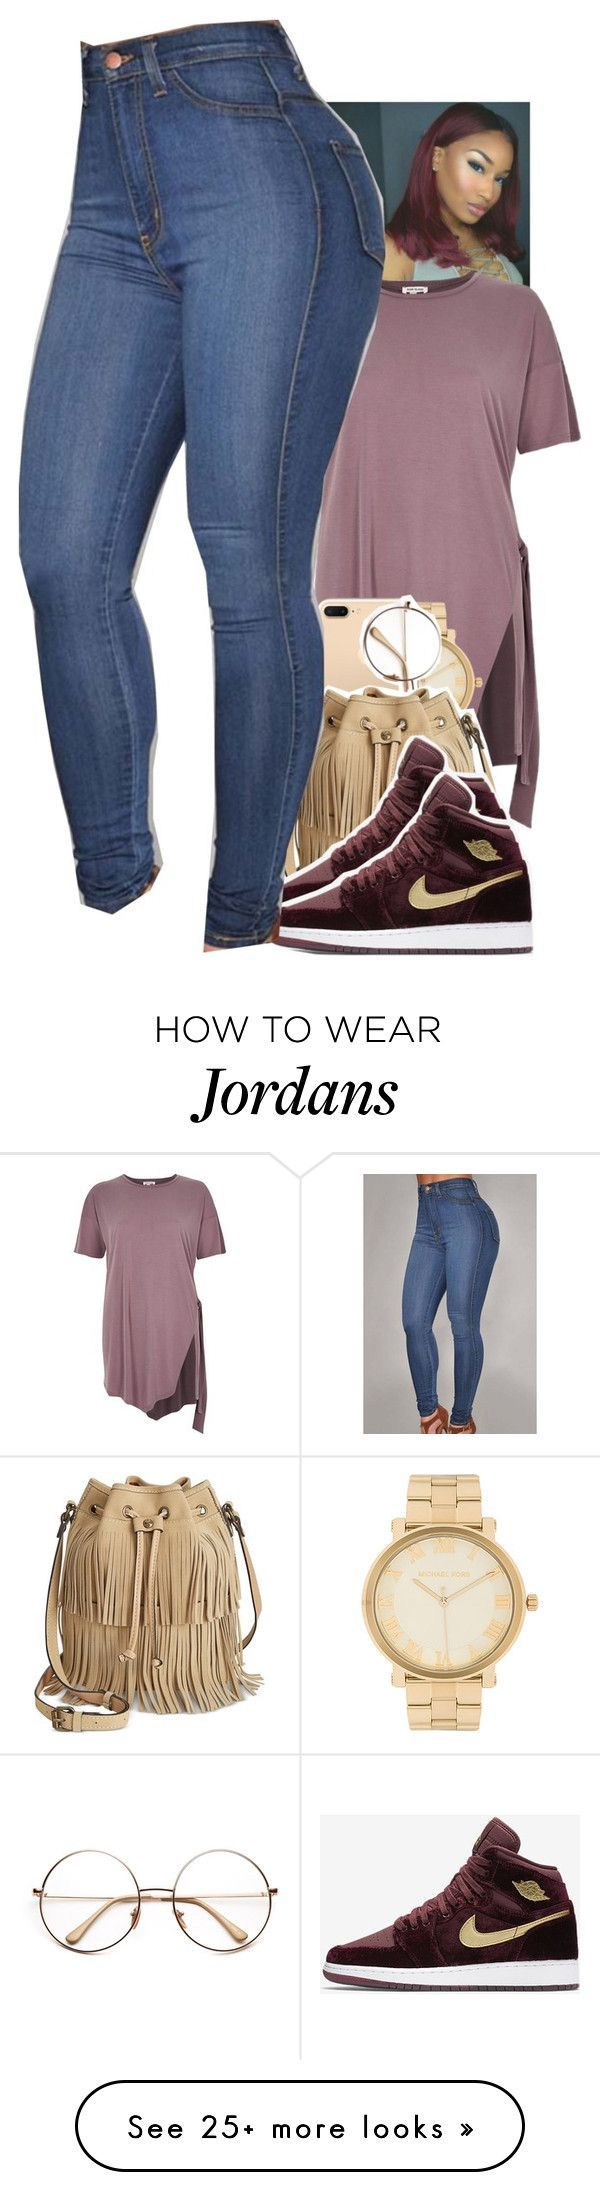 """Untitled #1886"" by toniiiiiiiiiiiiiii on Polyvore featuring River Island, Michael Kors, Patricia Nash and NIKE"